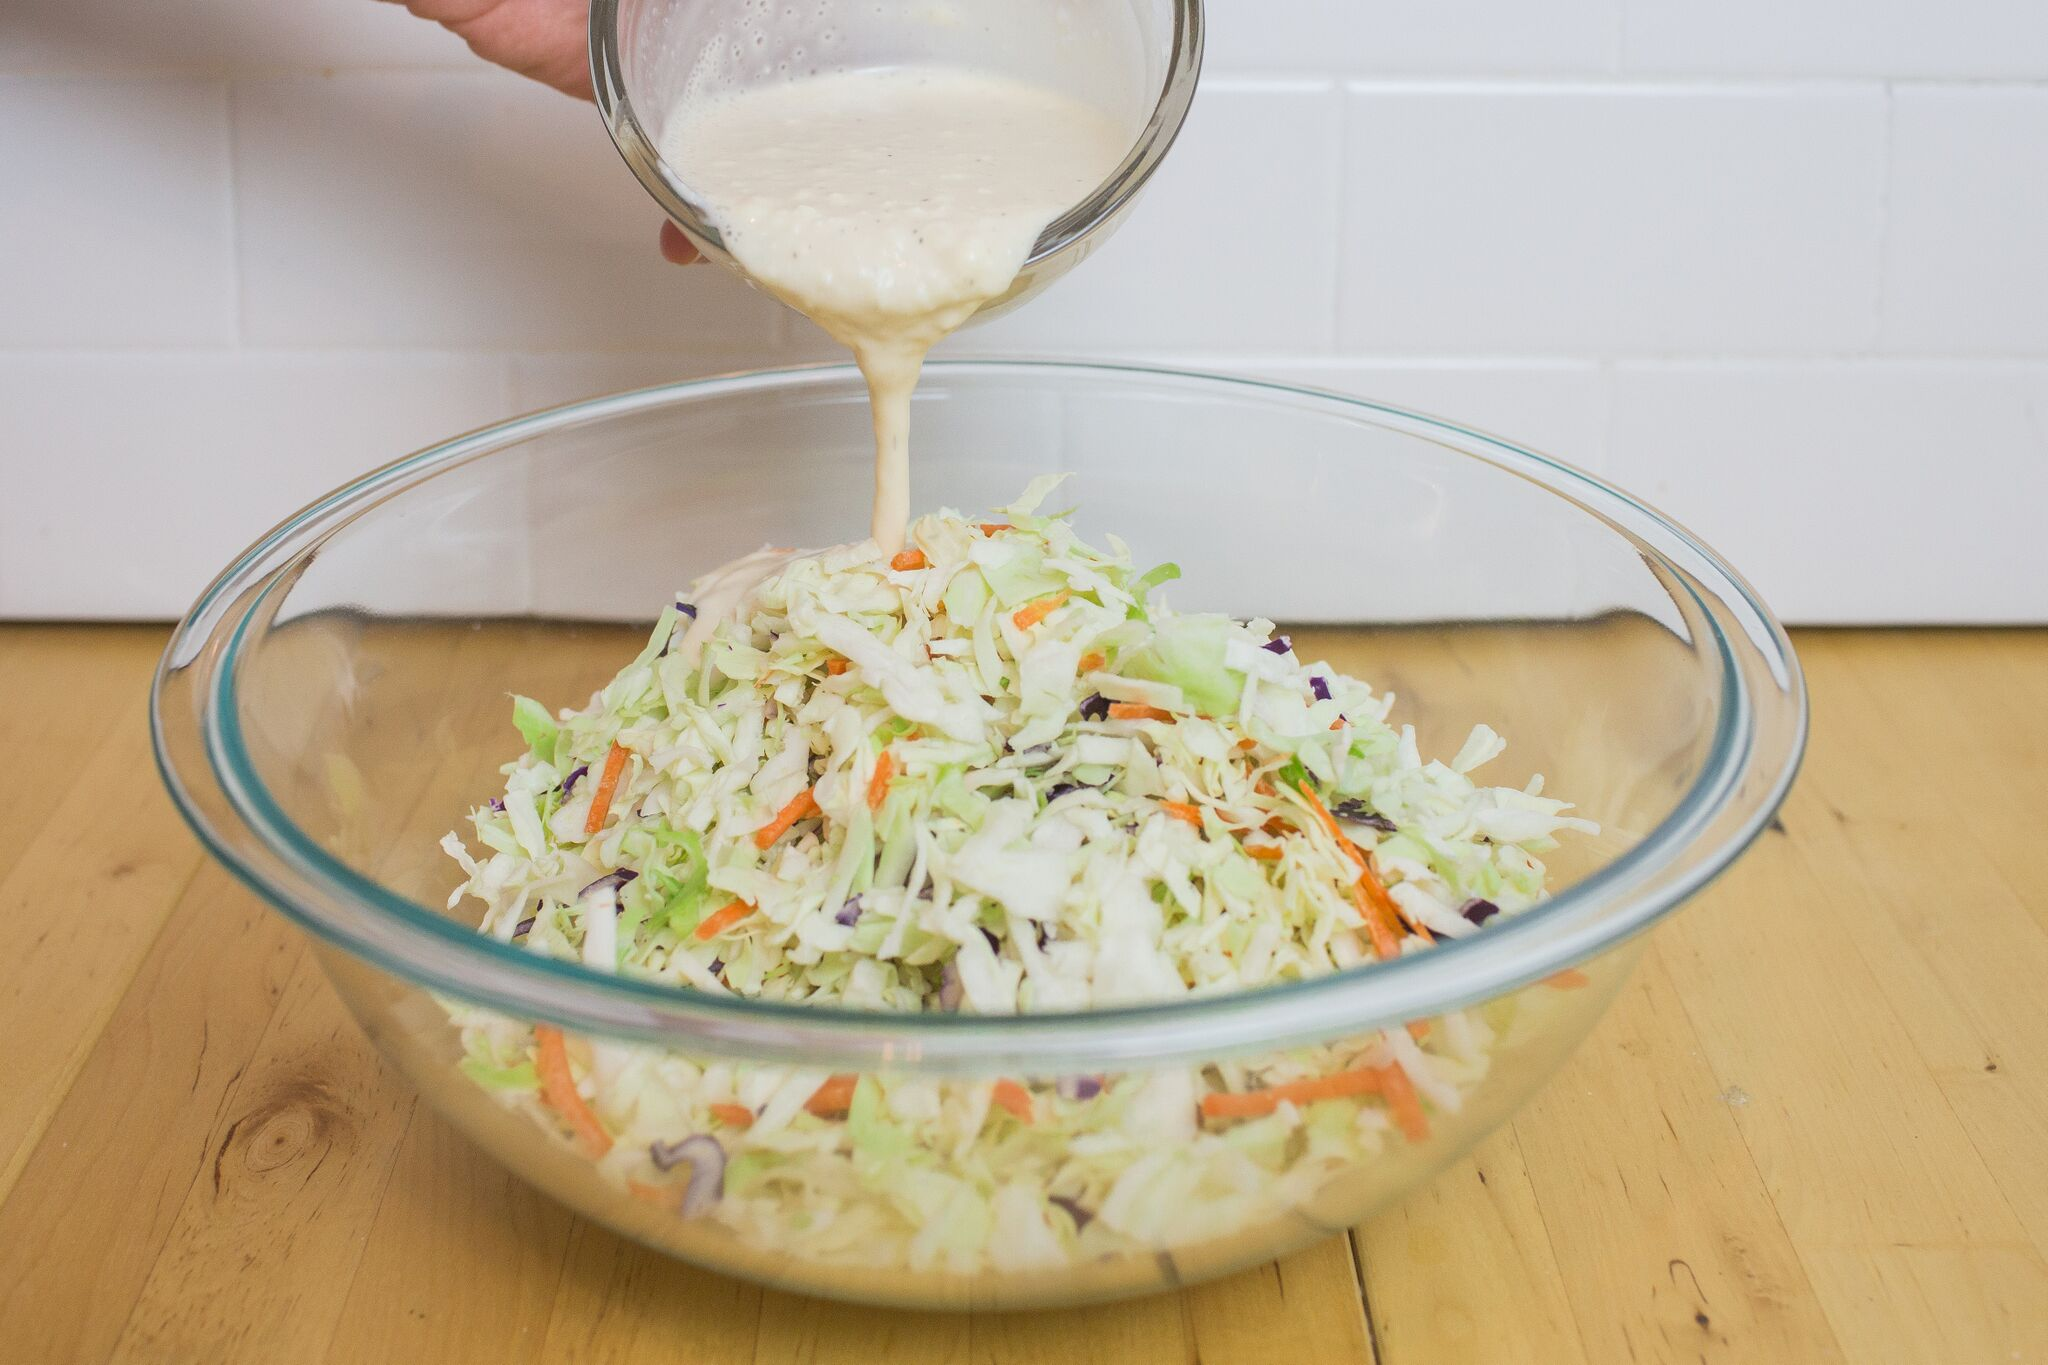 Combine the mayo, apple cider vinegar, sugar, salt and pepper then pour over the slaw mix.